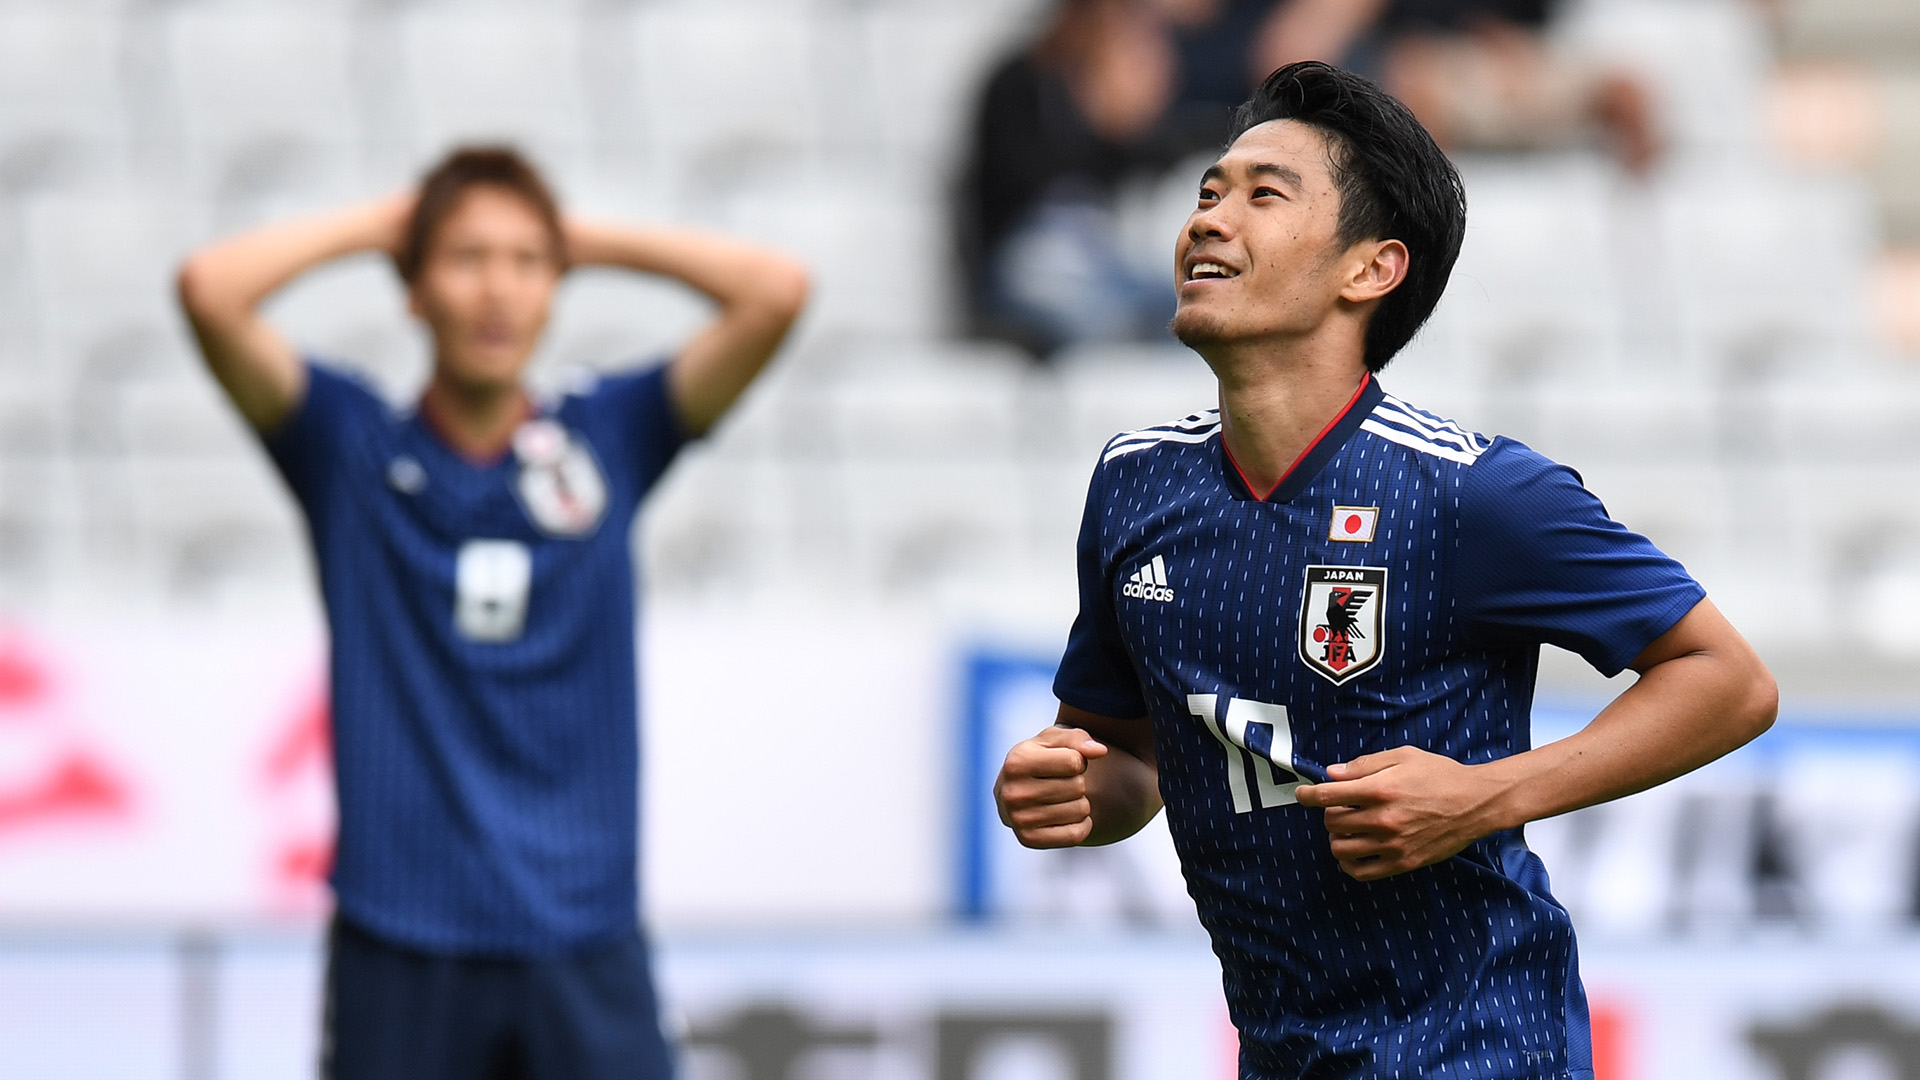 Osako's header lifts Japan past 10-man Colombia